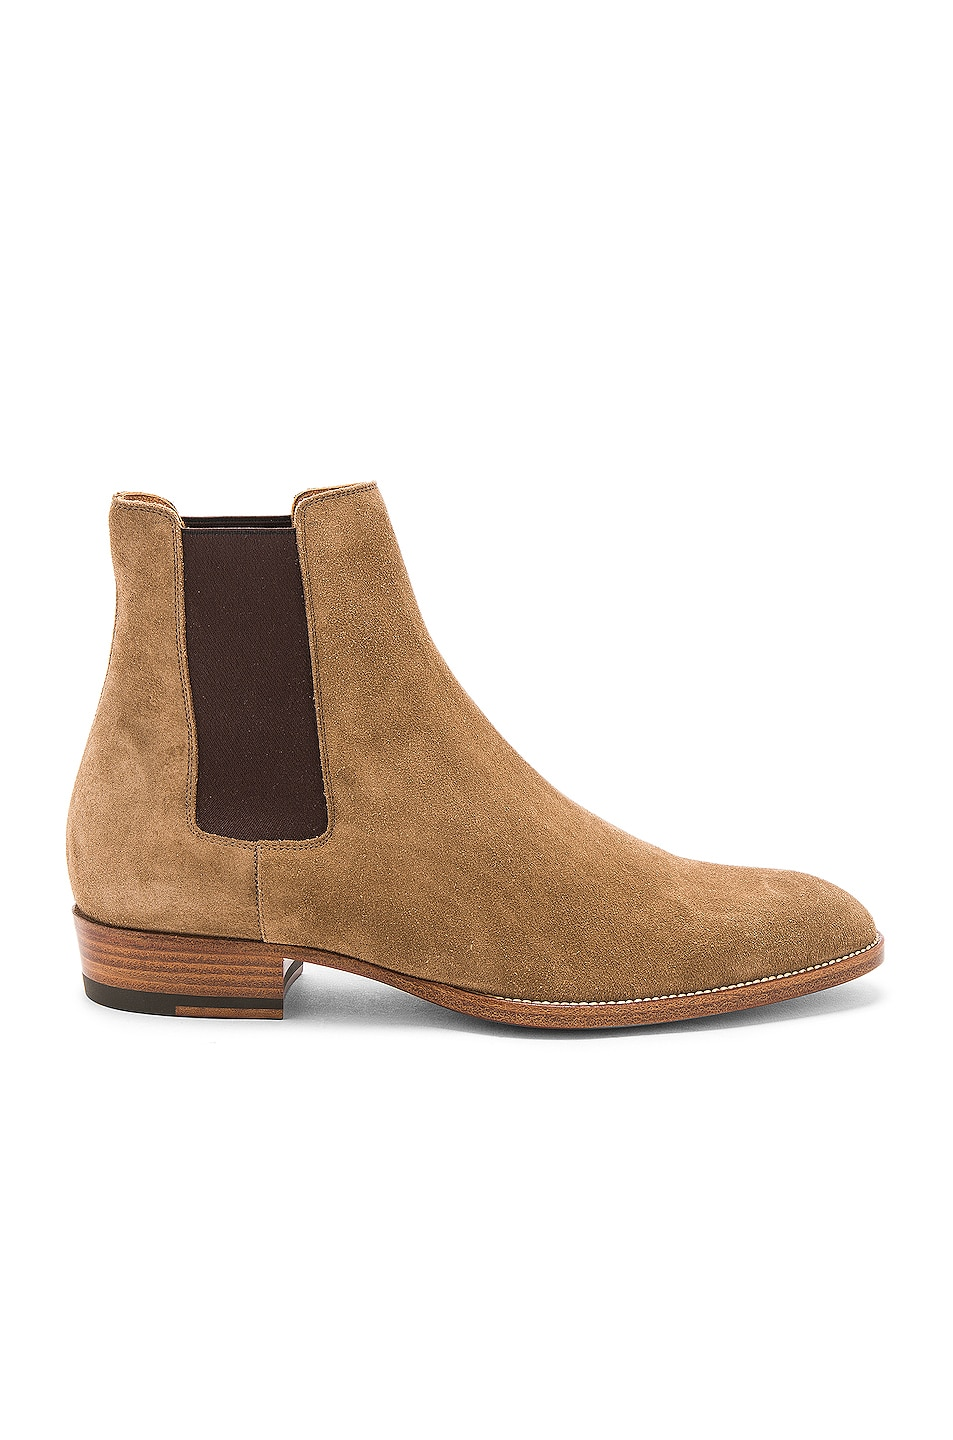 f423bb5c1f2 Saint Laurent Suede Wyatt Chelsea Boots in Light Cigar | FWRD